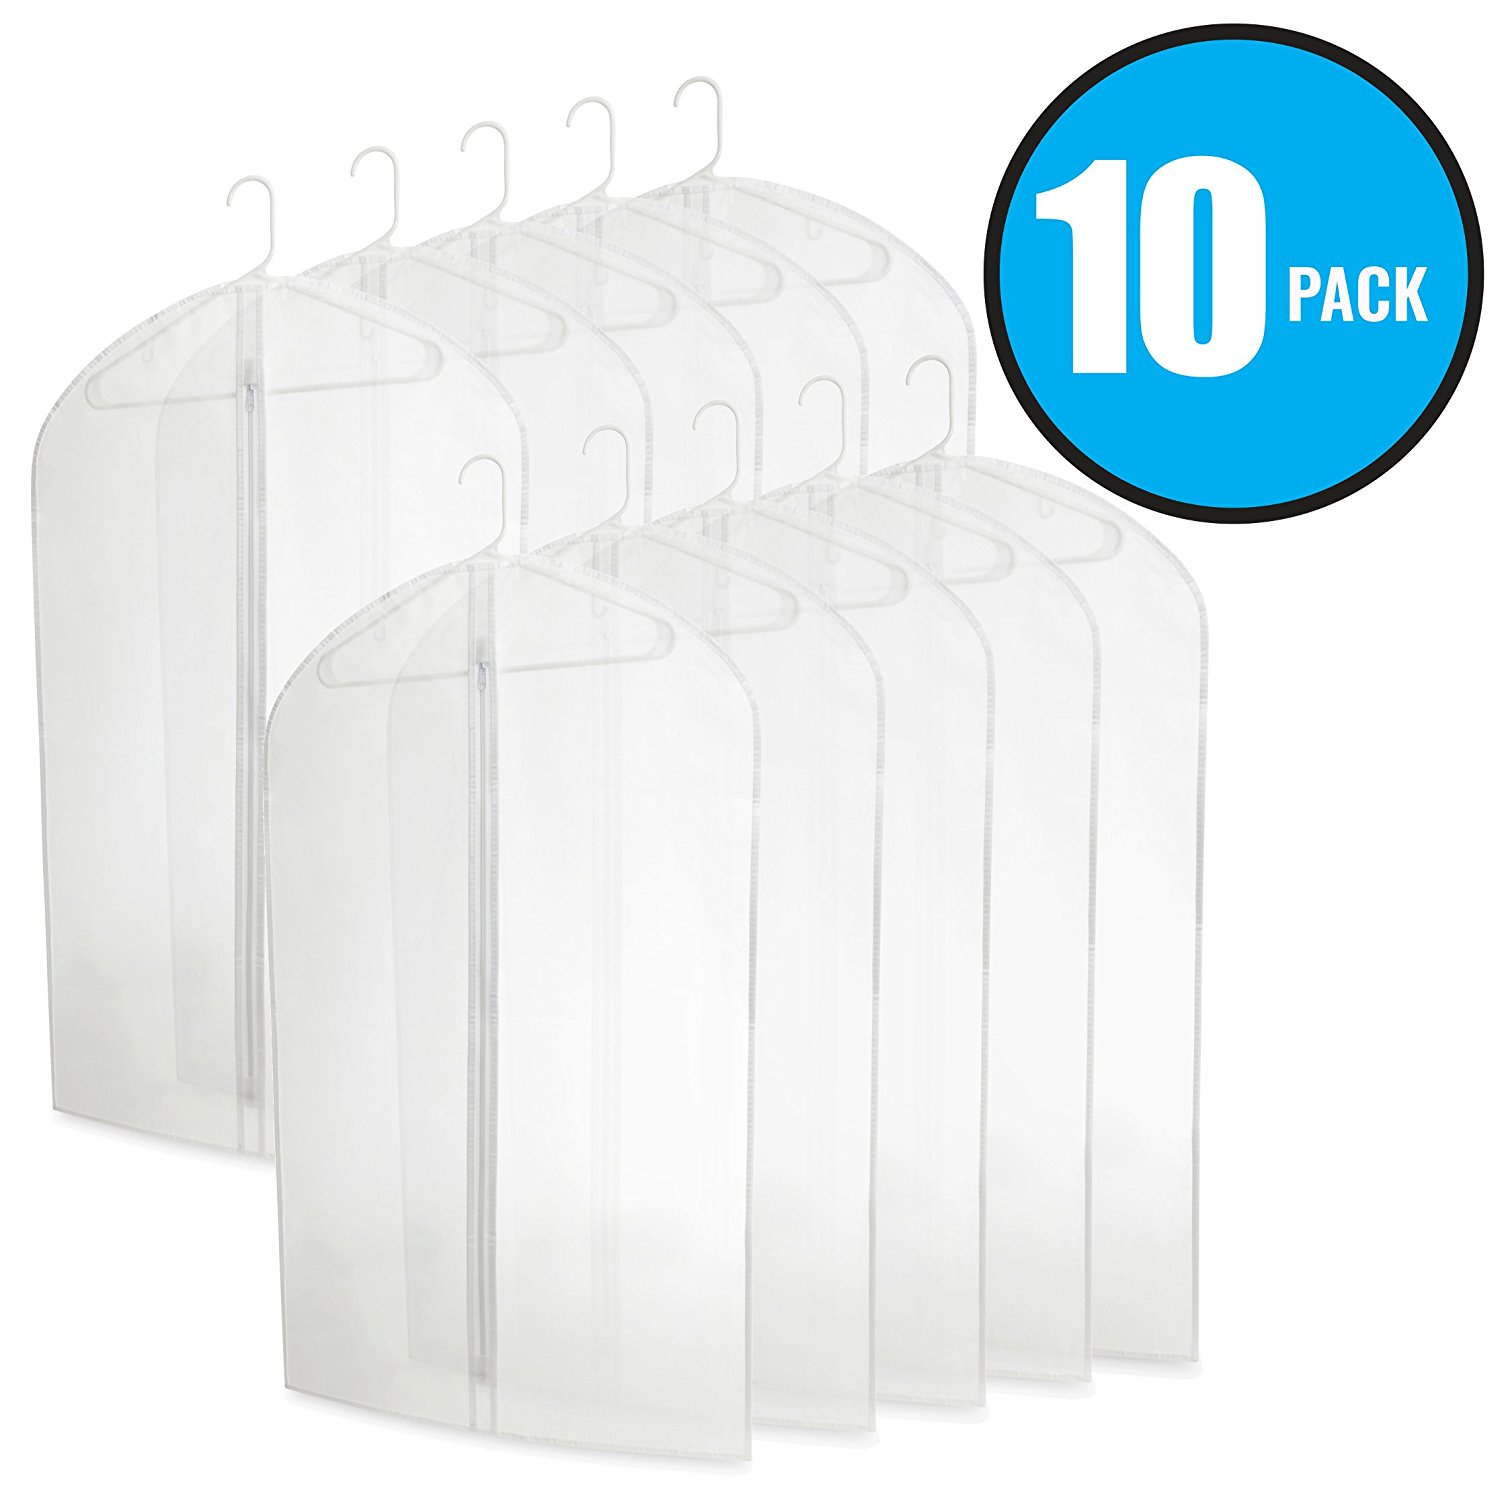 Plixio 40 Inch PEVA Garment Bags - Clear Plastic Hanging Clothing Storage for Suits or Dresses (10 Pack)